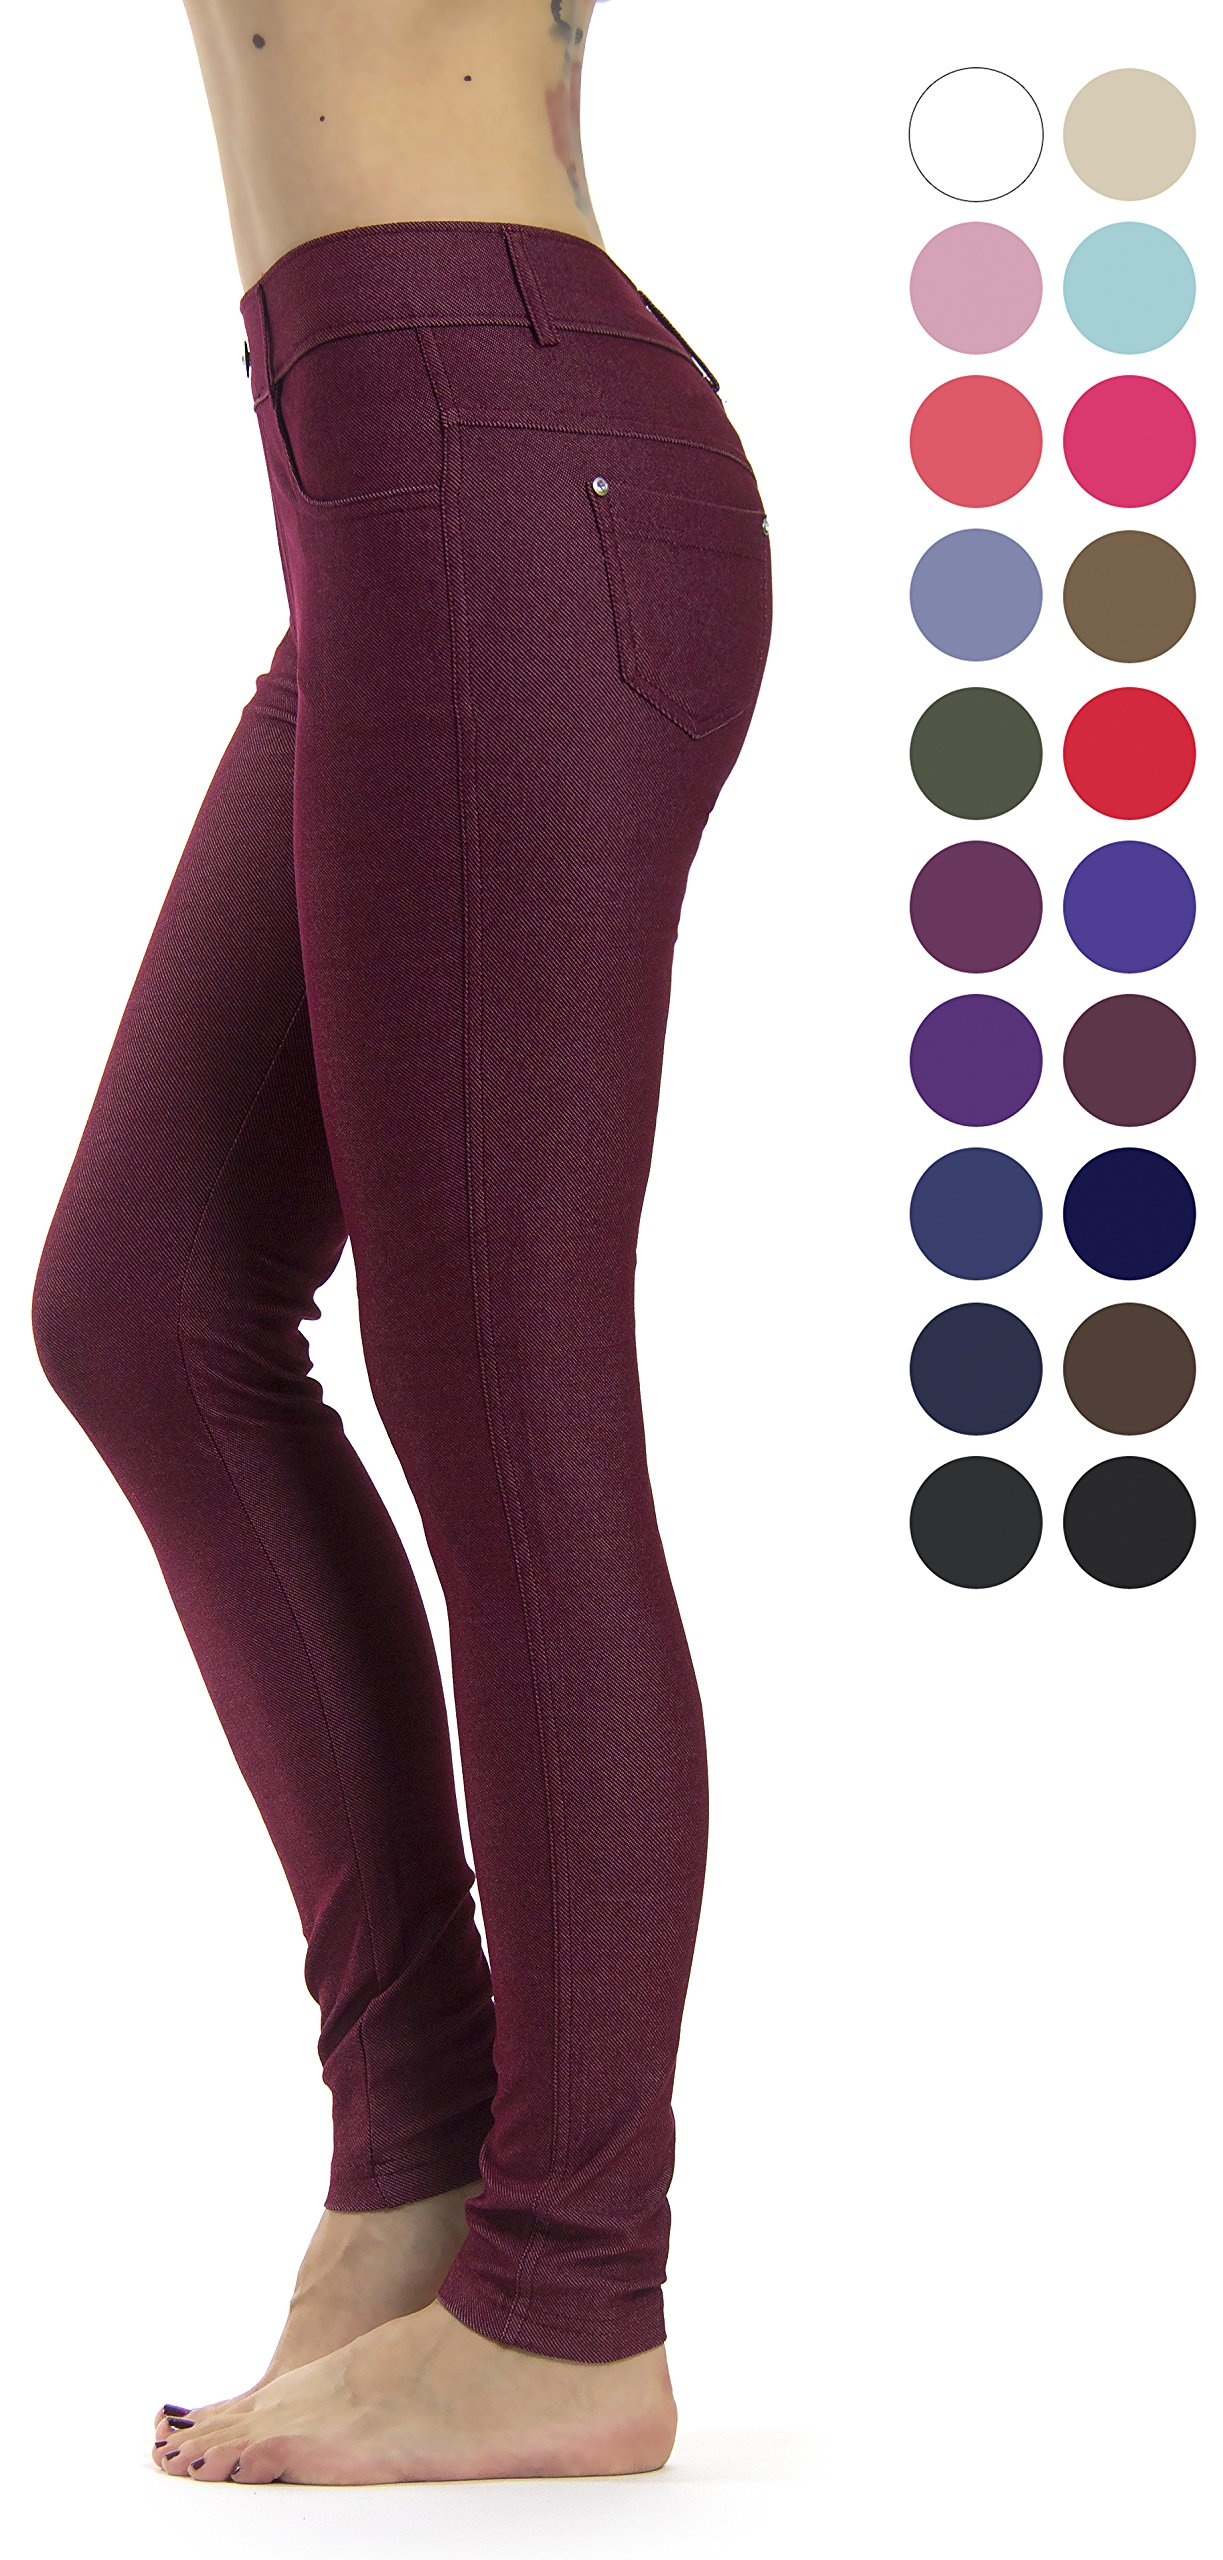 Prolific Health Women's Jean Look Jeggings Tights Slimming Many Colors Spandex Leggings Pants S-XXXL (Large, Burgundy)